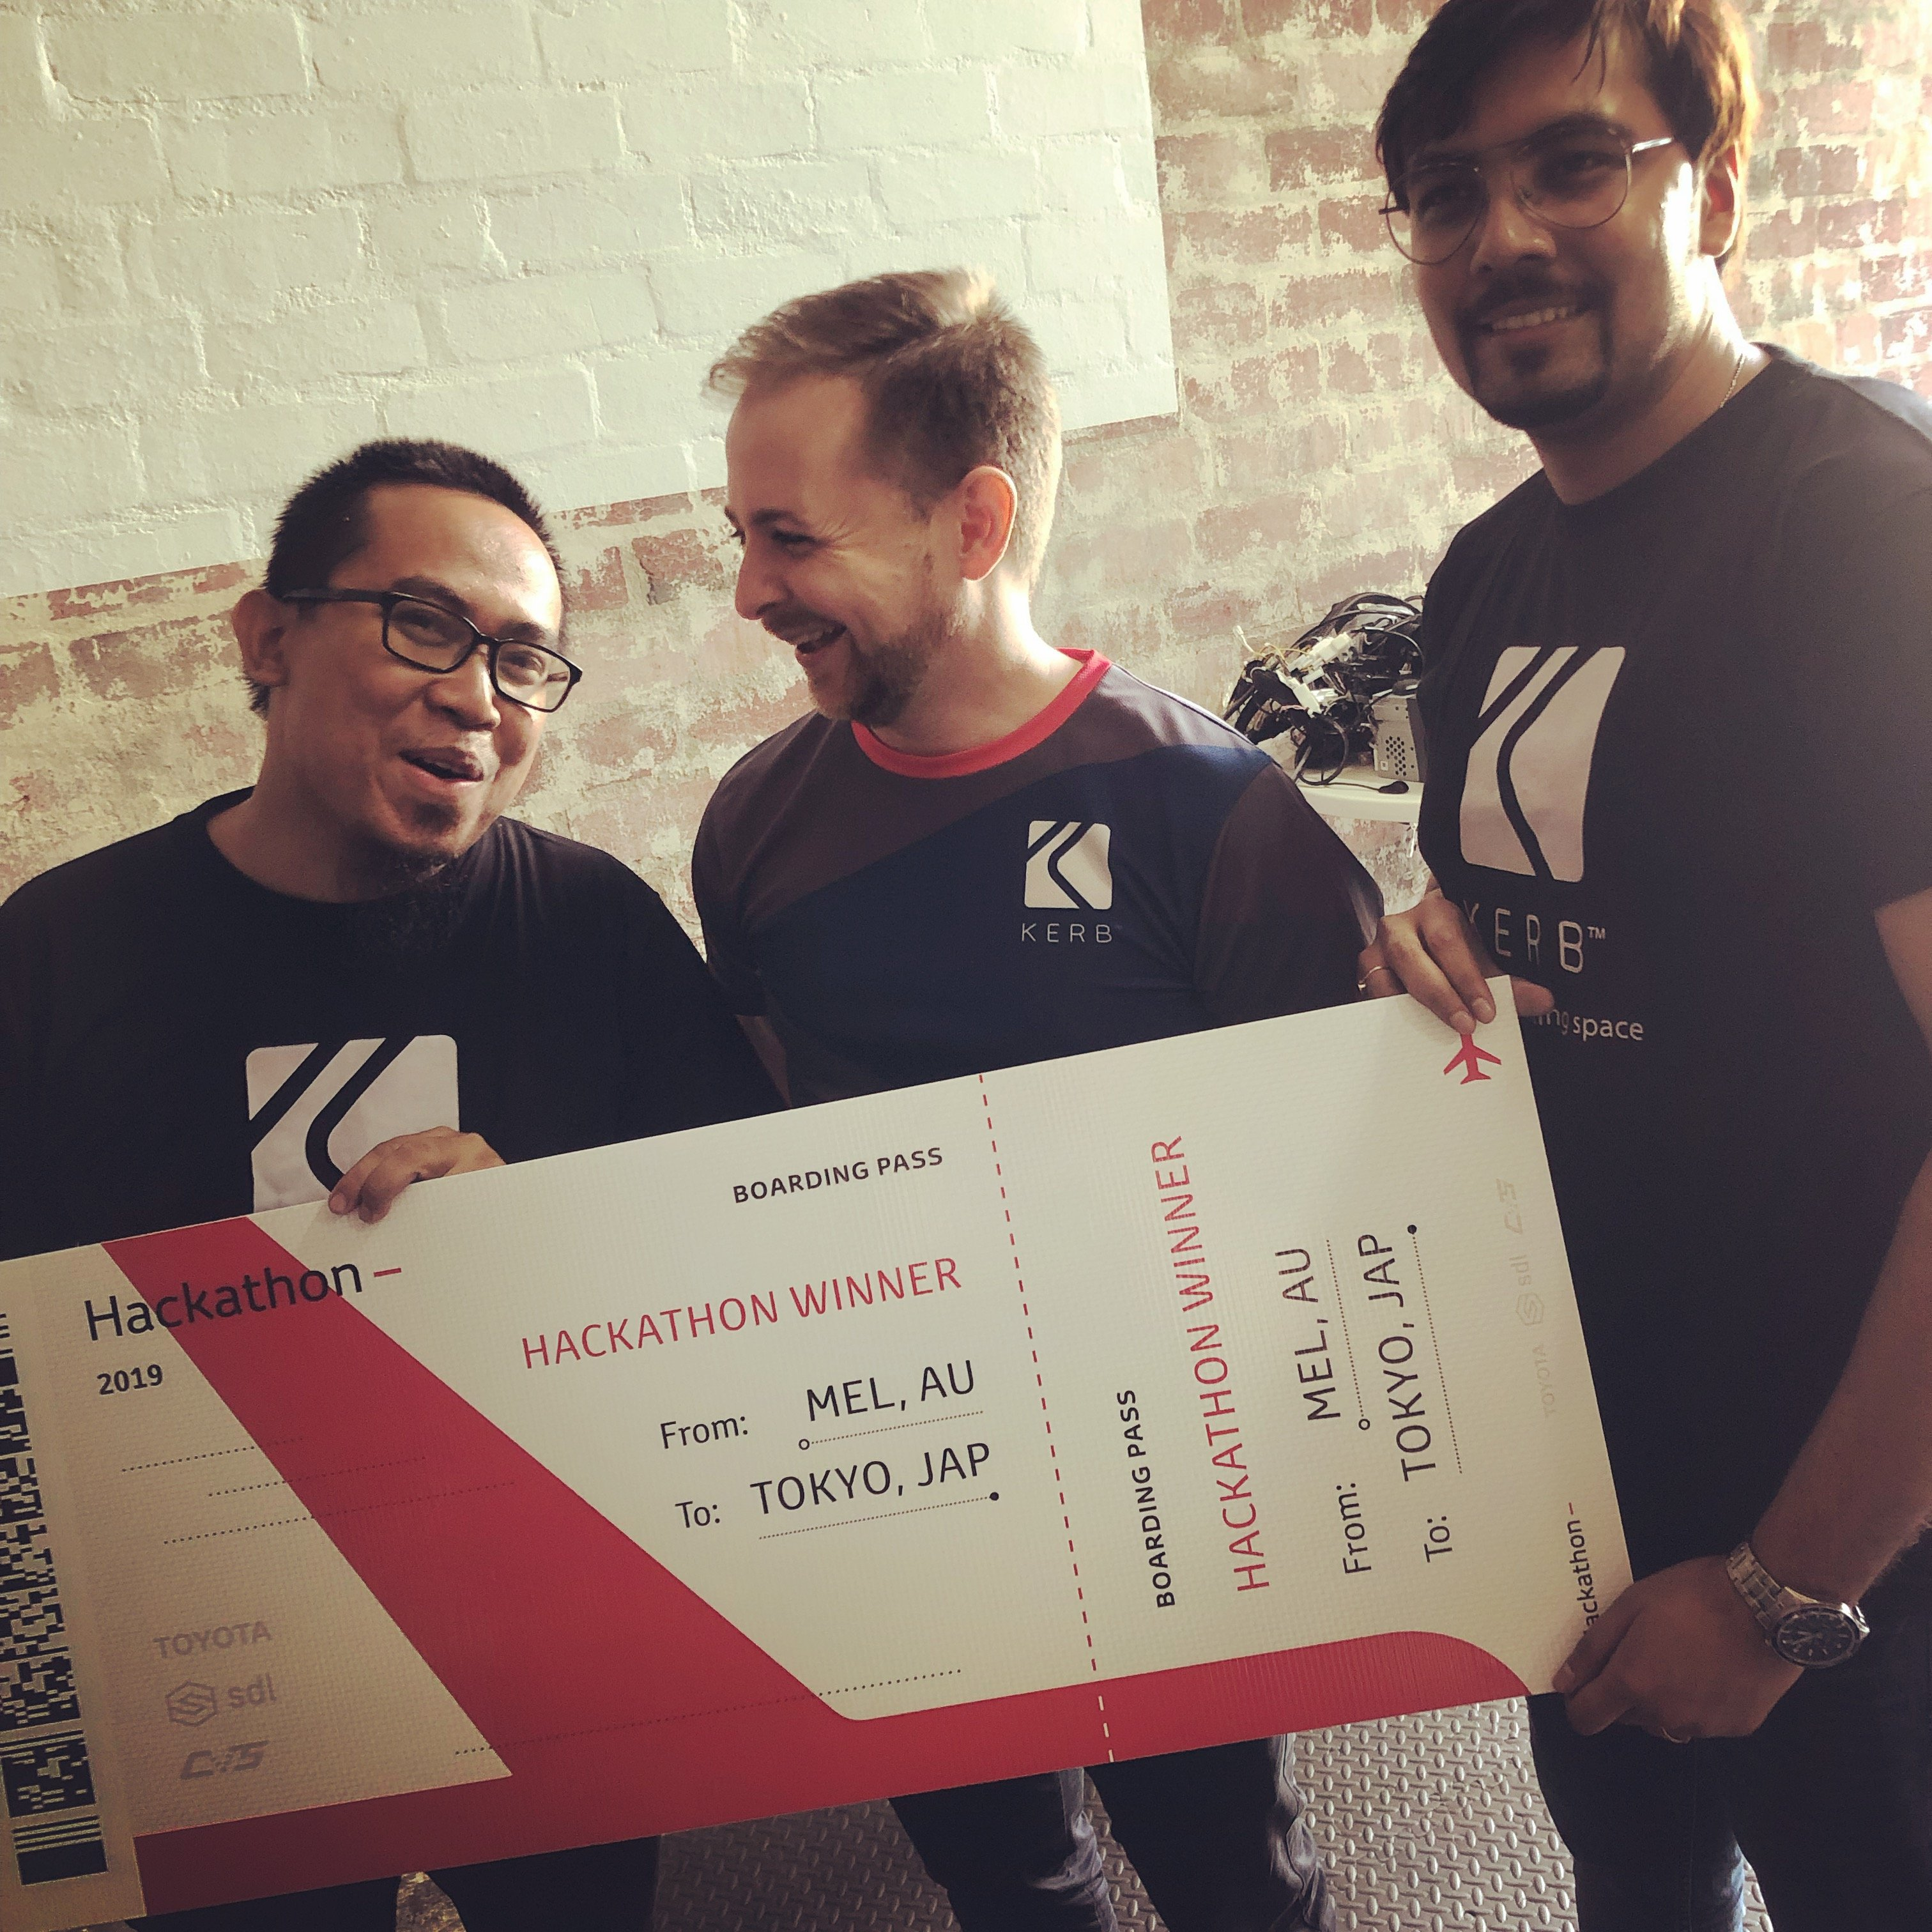 Kerb: Oh, what a feeling to win the Toyota Hackathon